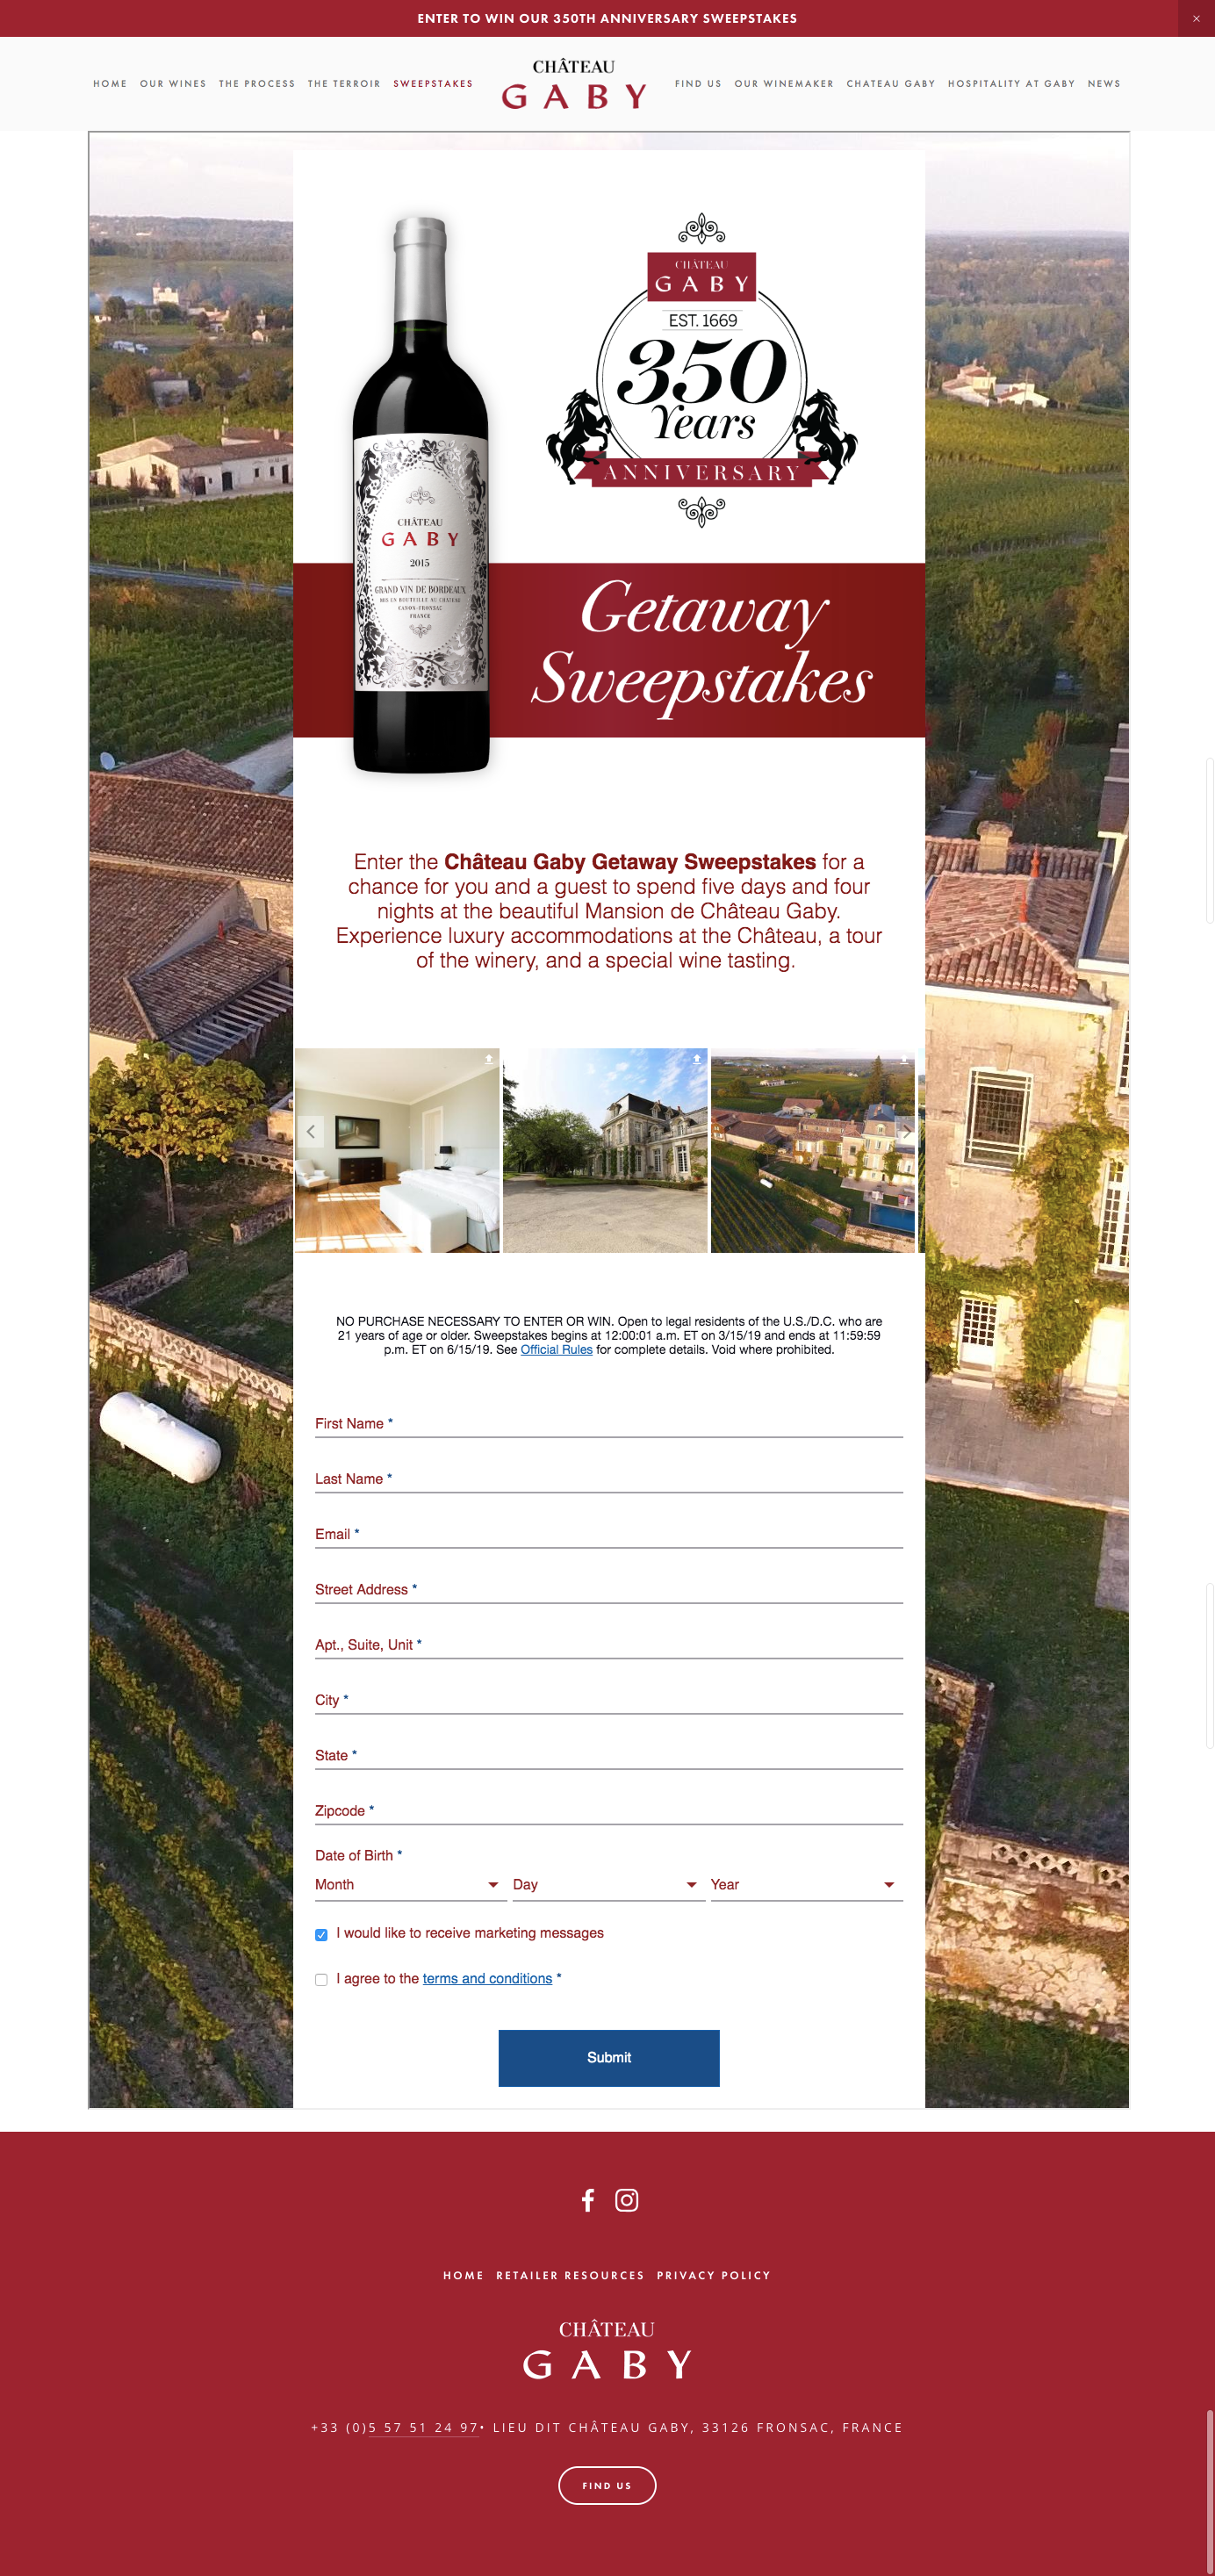 screenshot-www.chateaugaby.com-2019.04.11-18-00-24